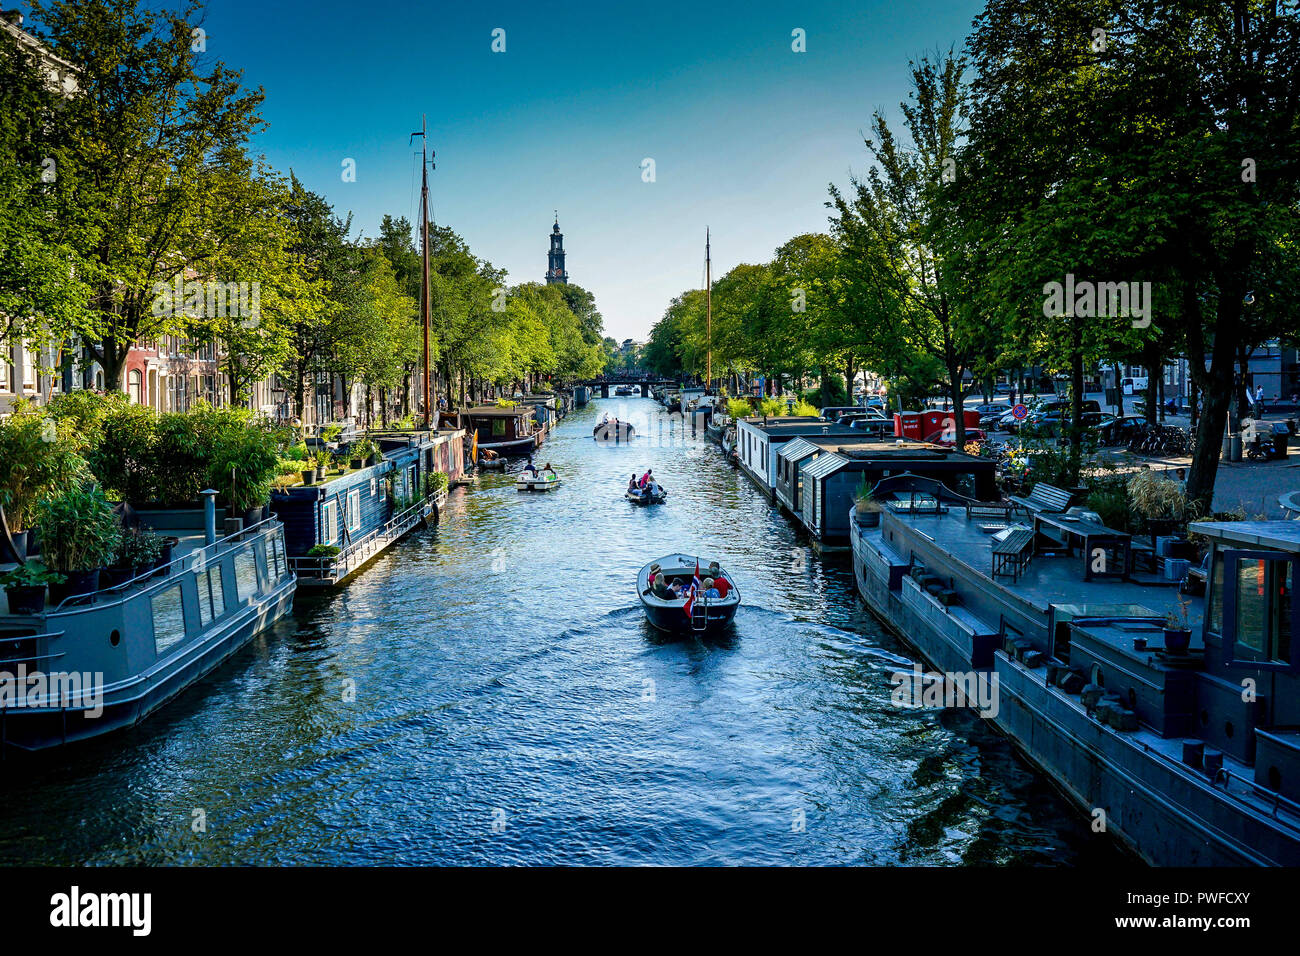 Netherlands,South Holland,Europe, Hampshire Inn - Prinsengracht, CANAL AMIDST TREES AGAINST SKY - Stock Image